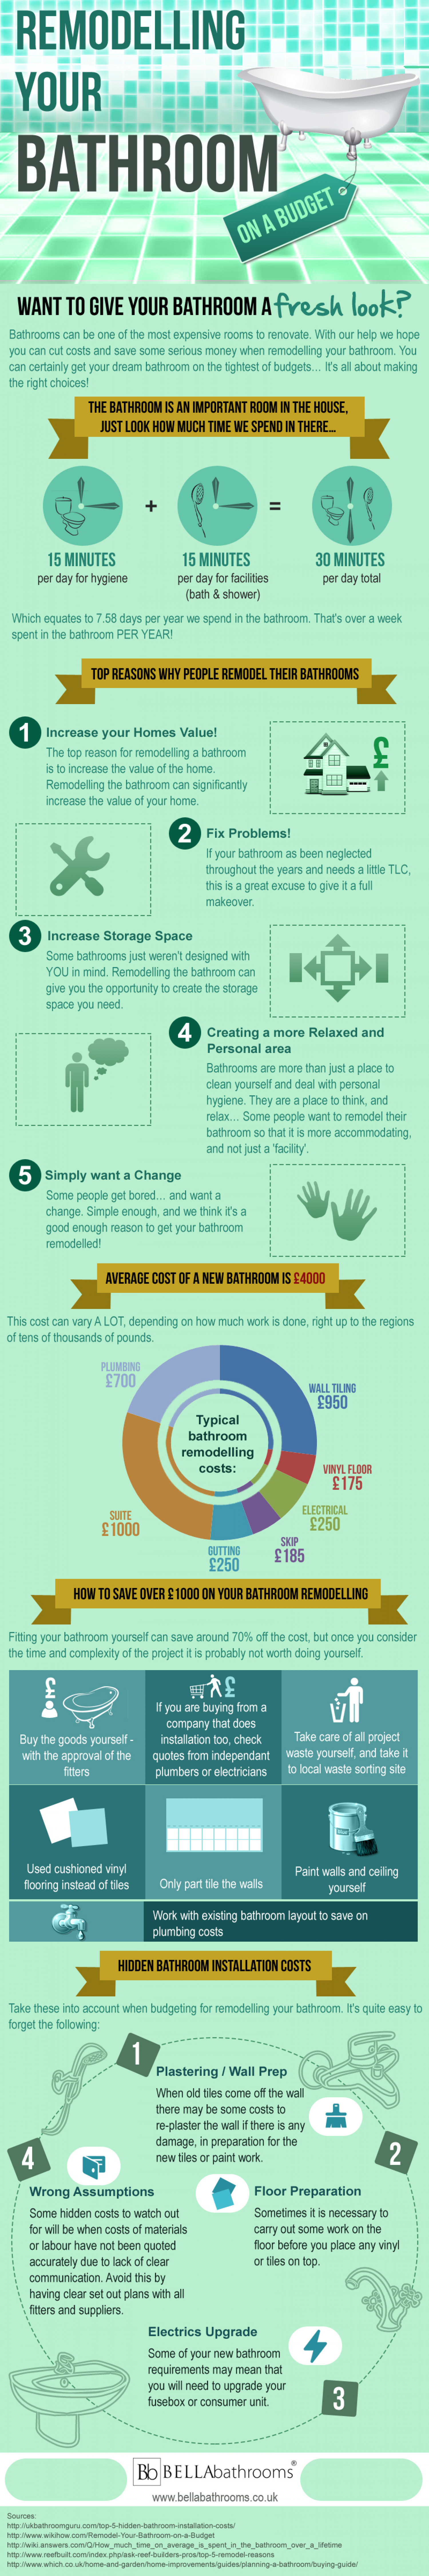 Remodelling Your Bathroom Infographic